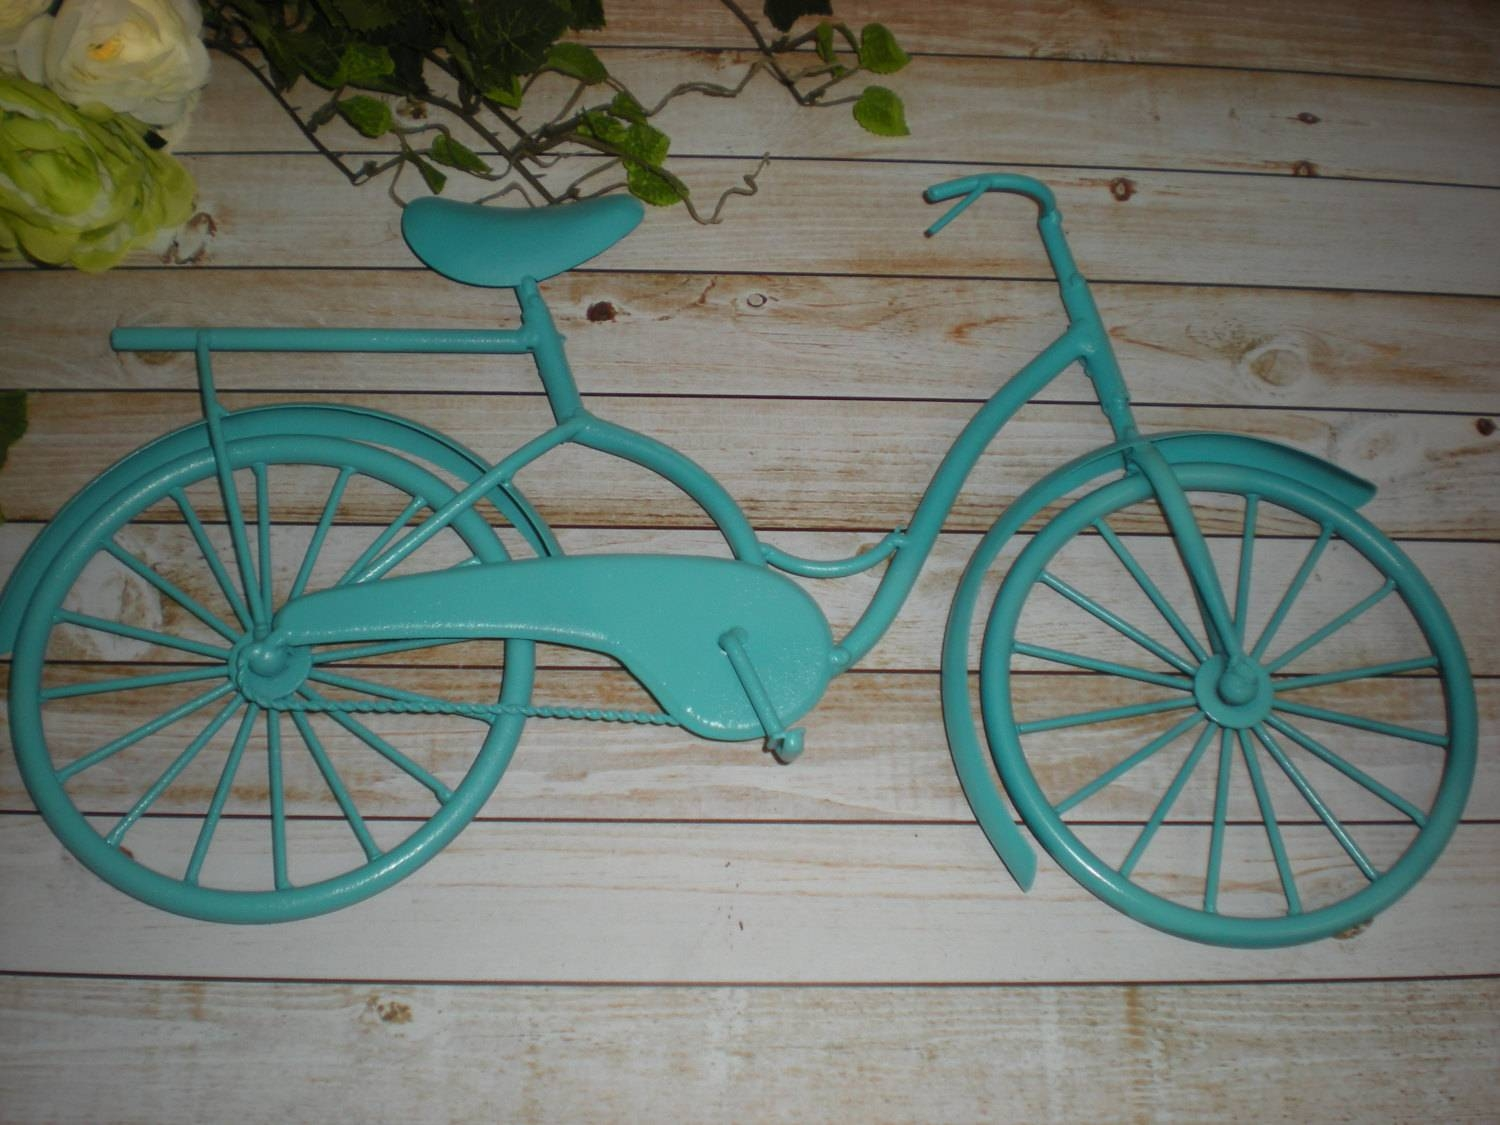 Winsome Metal Bicycle Wall Decor Bicycle Wall Art Wall Wrought Pertaining To Current Metal Bicycle Art (View 20 of 20)